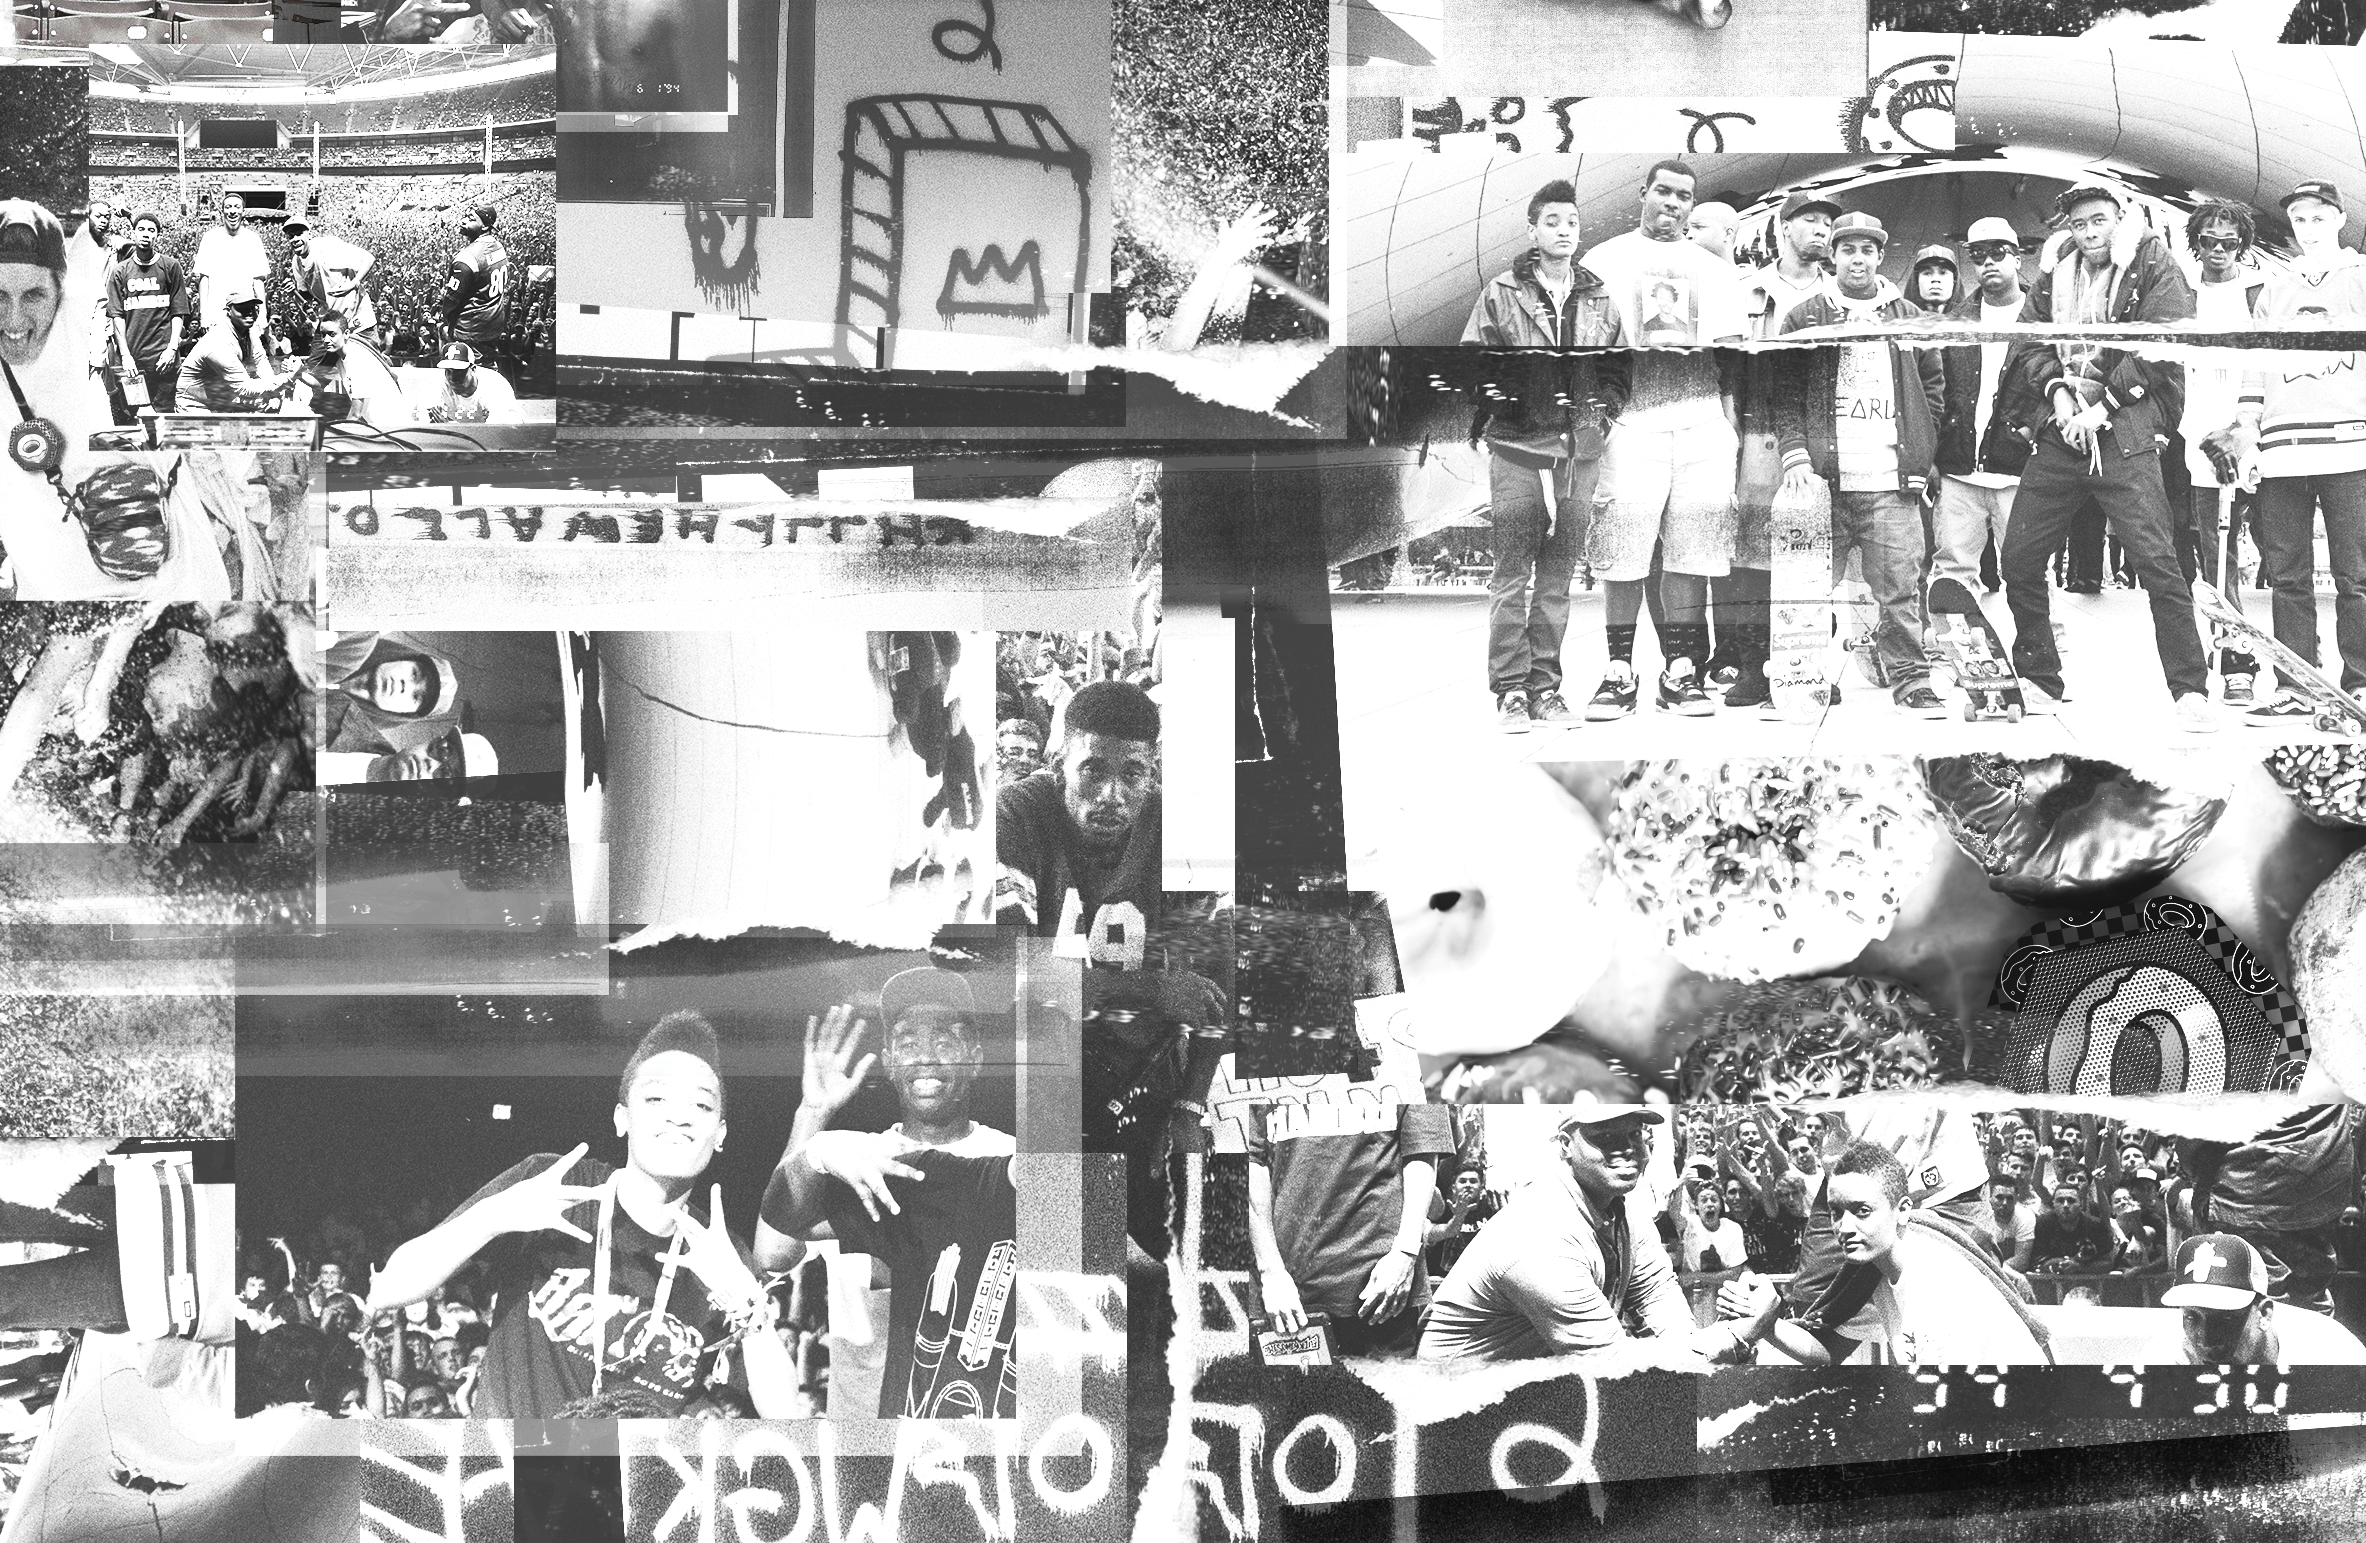 Collage of black and white and grainy images of odd future boombtix speakers, illustrations, and group members